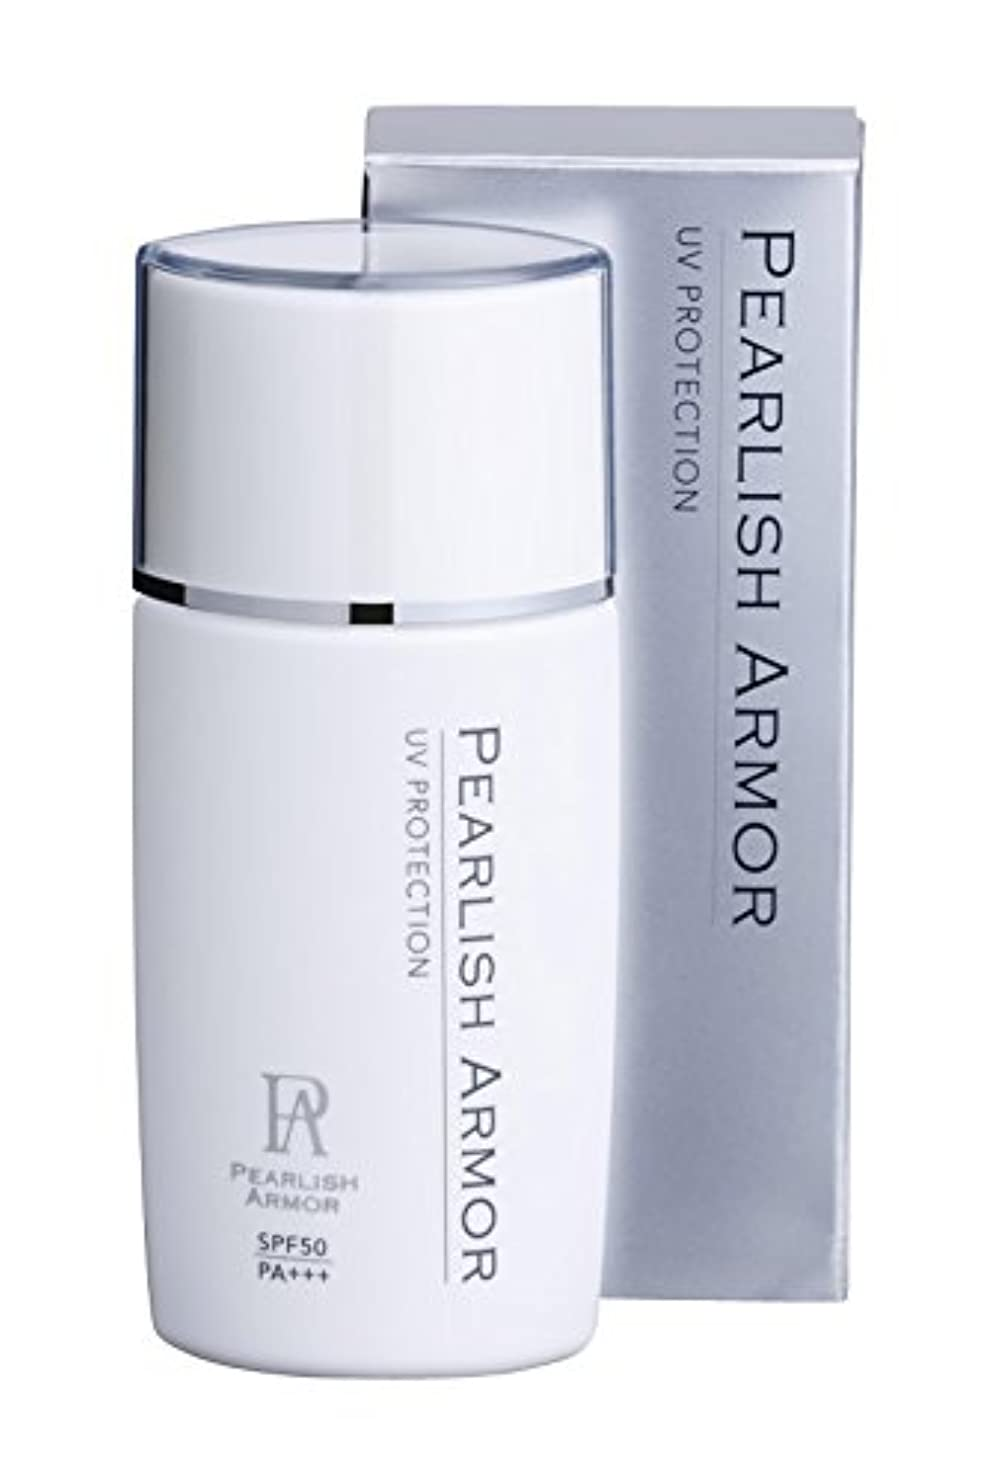 PEARLISH ARMOR UV PROTECTION SPF50 PA+++